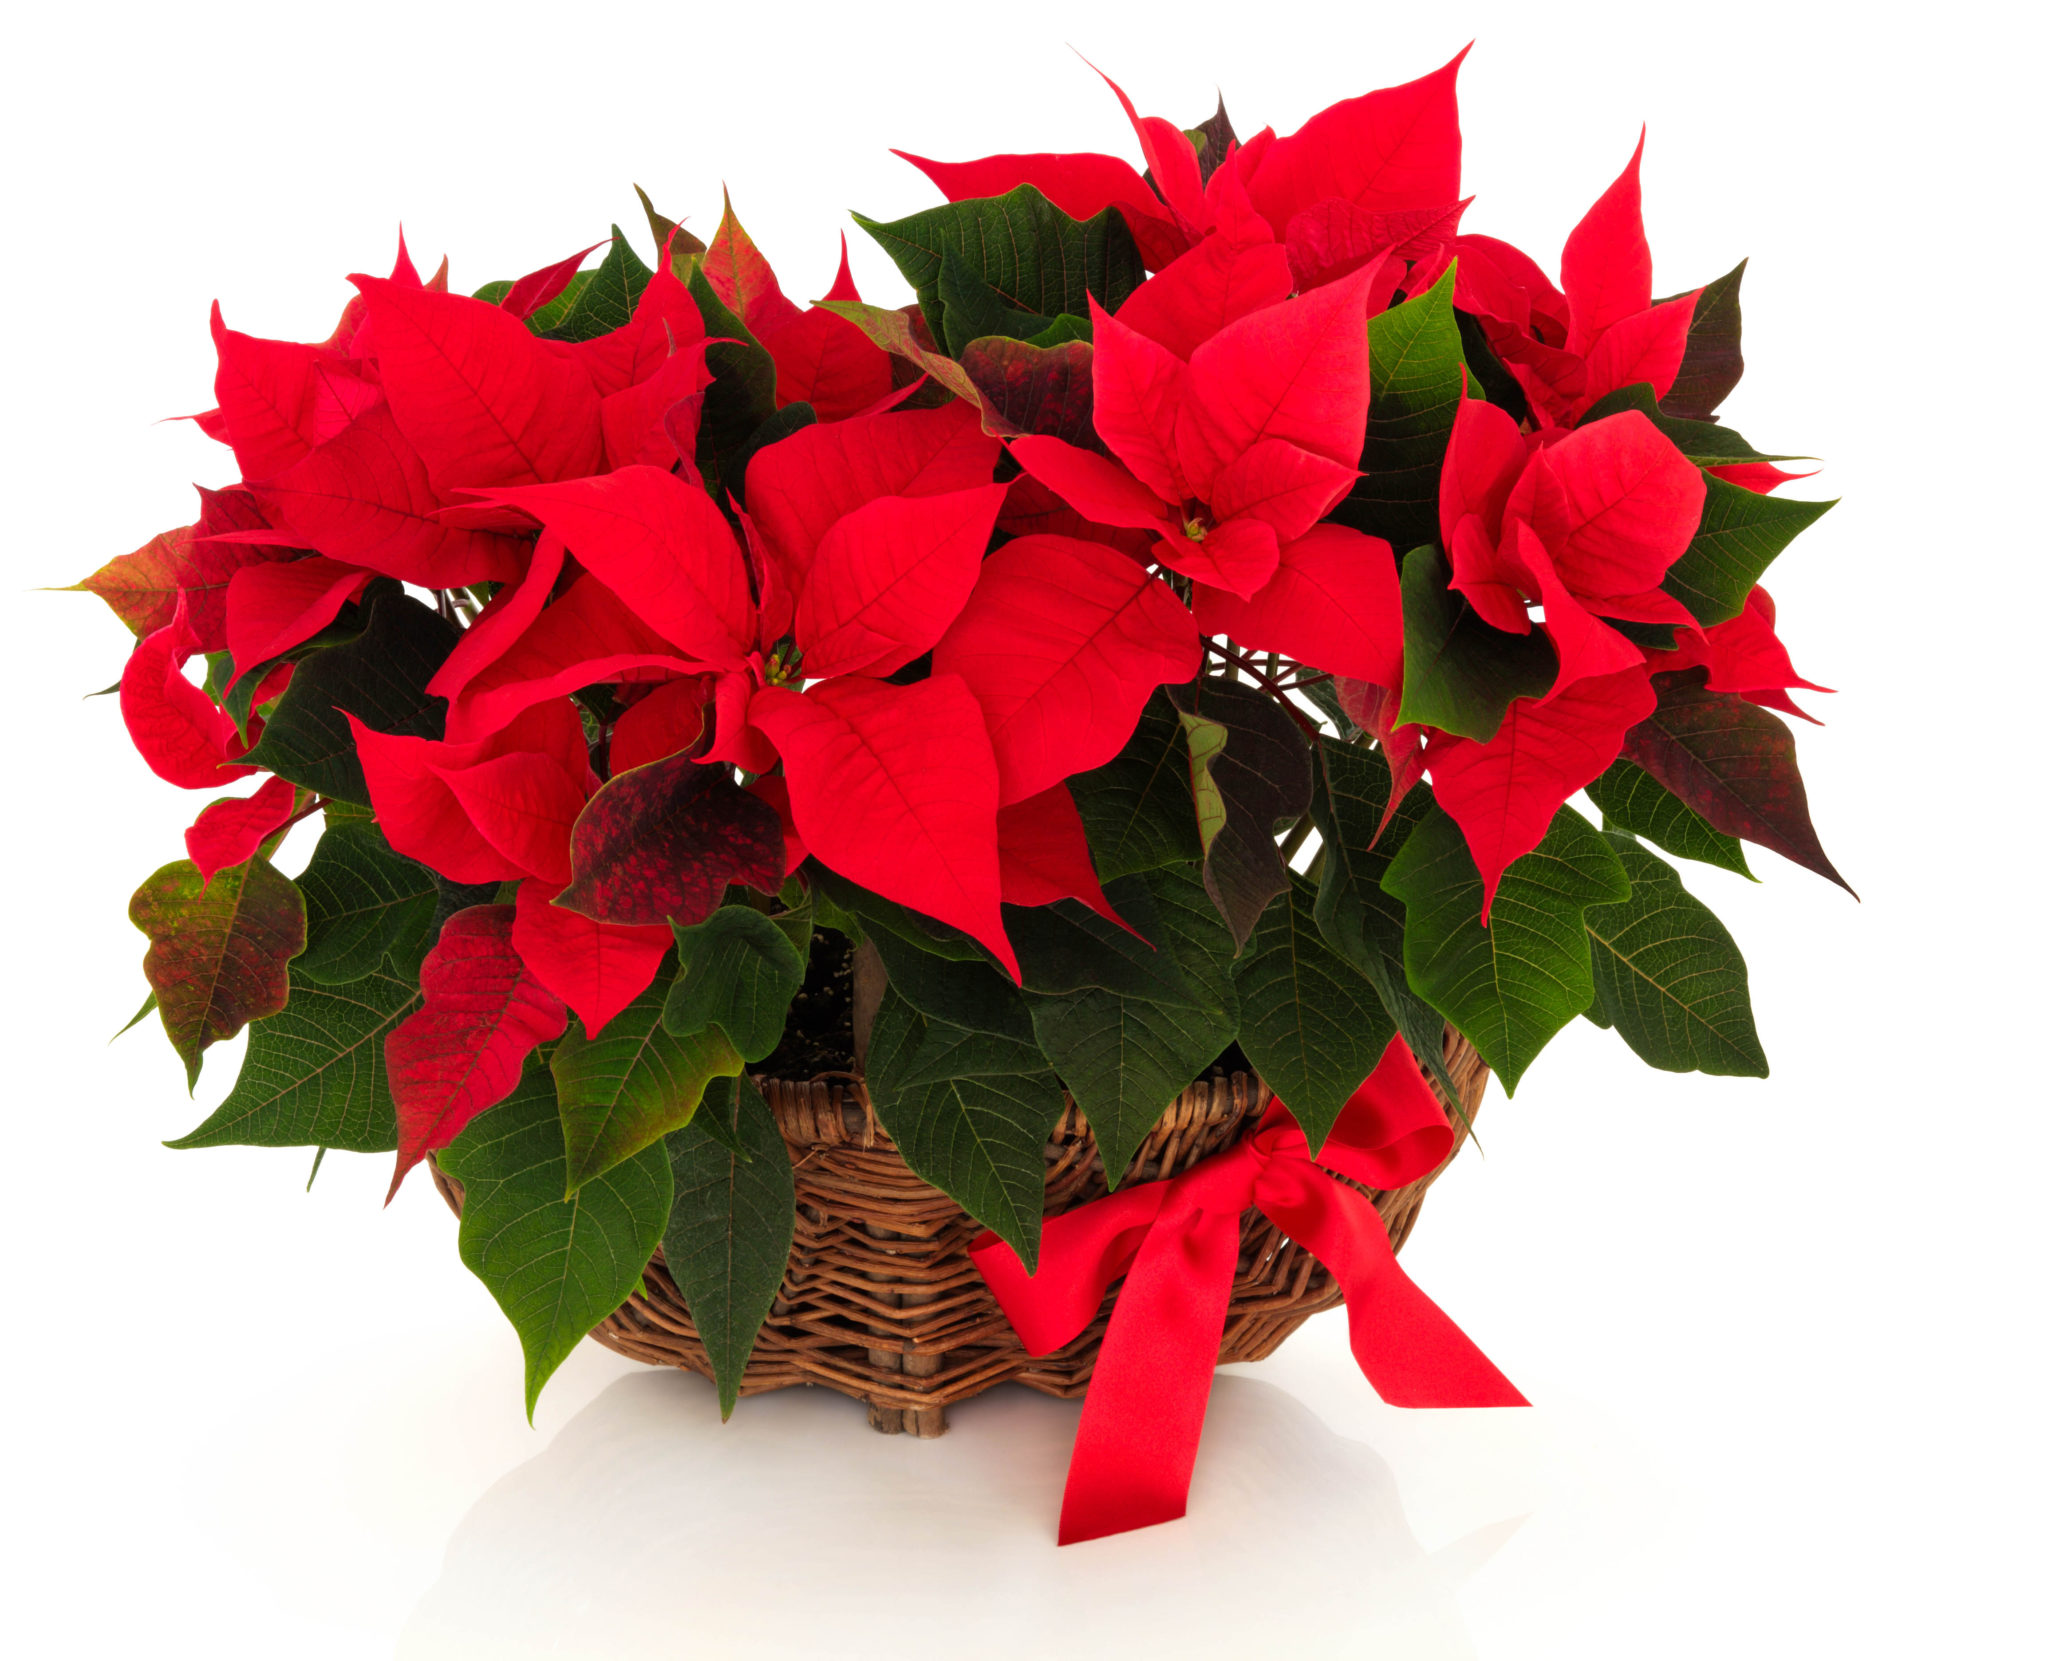 Are poinsettias poisonous? As much as it suits holiday decor and seems tailor-made for that special time of year between Thanksgiving and the first of January, the poinsettia has a reputation that few plants would want. #poinsettias